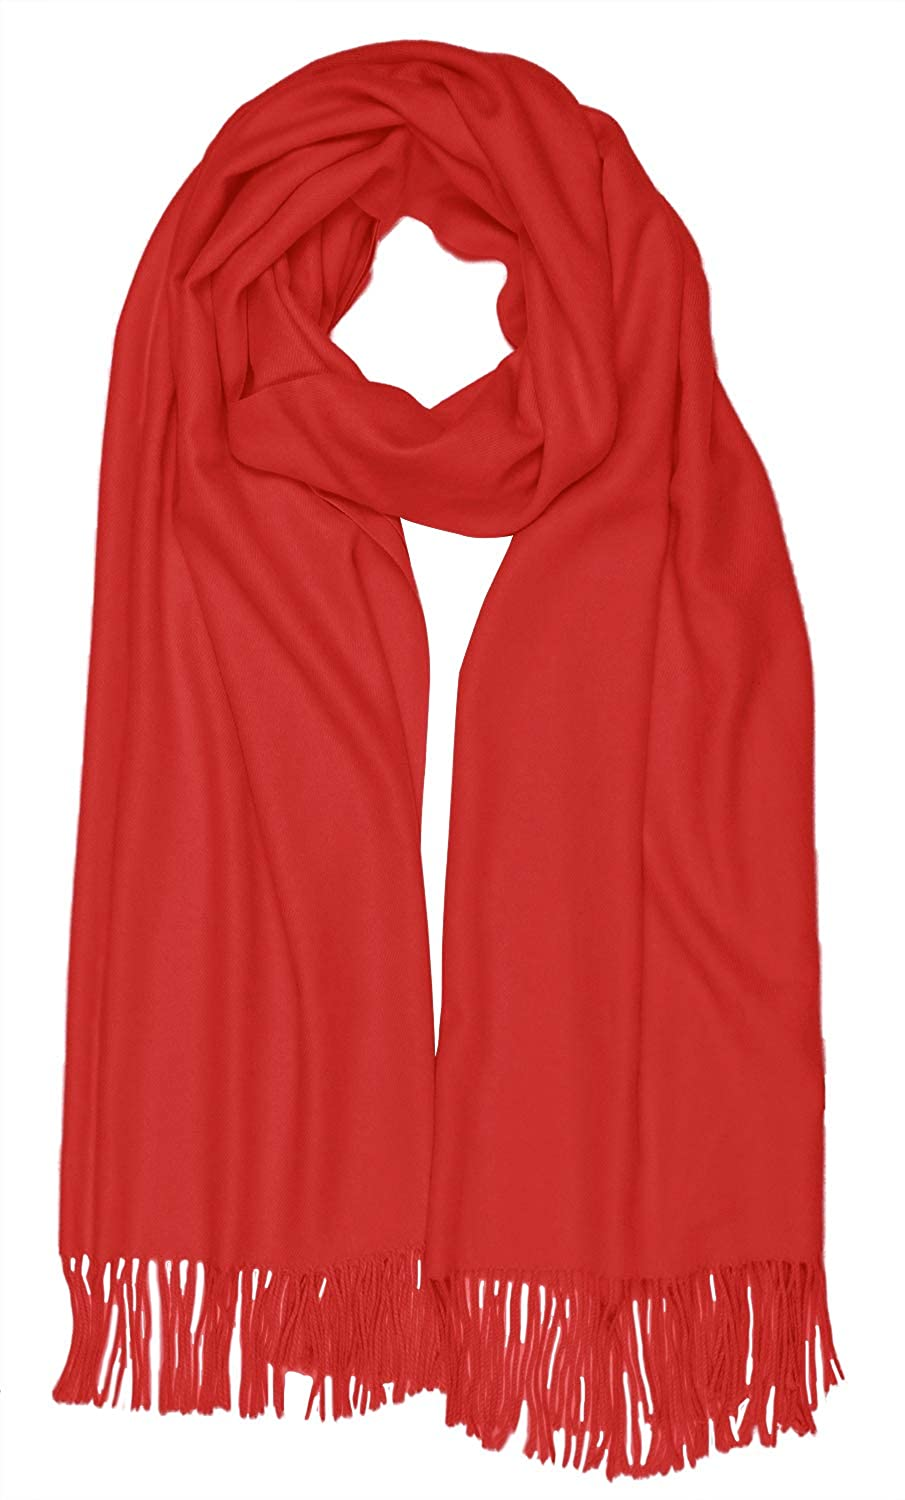 Red Women Solid Soft Cashmere Feel Shawl Wrap Scarf